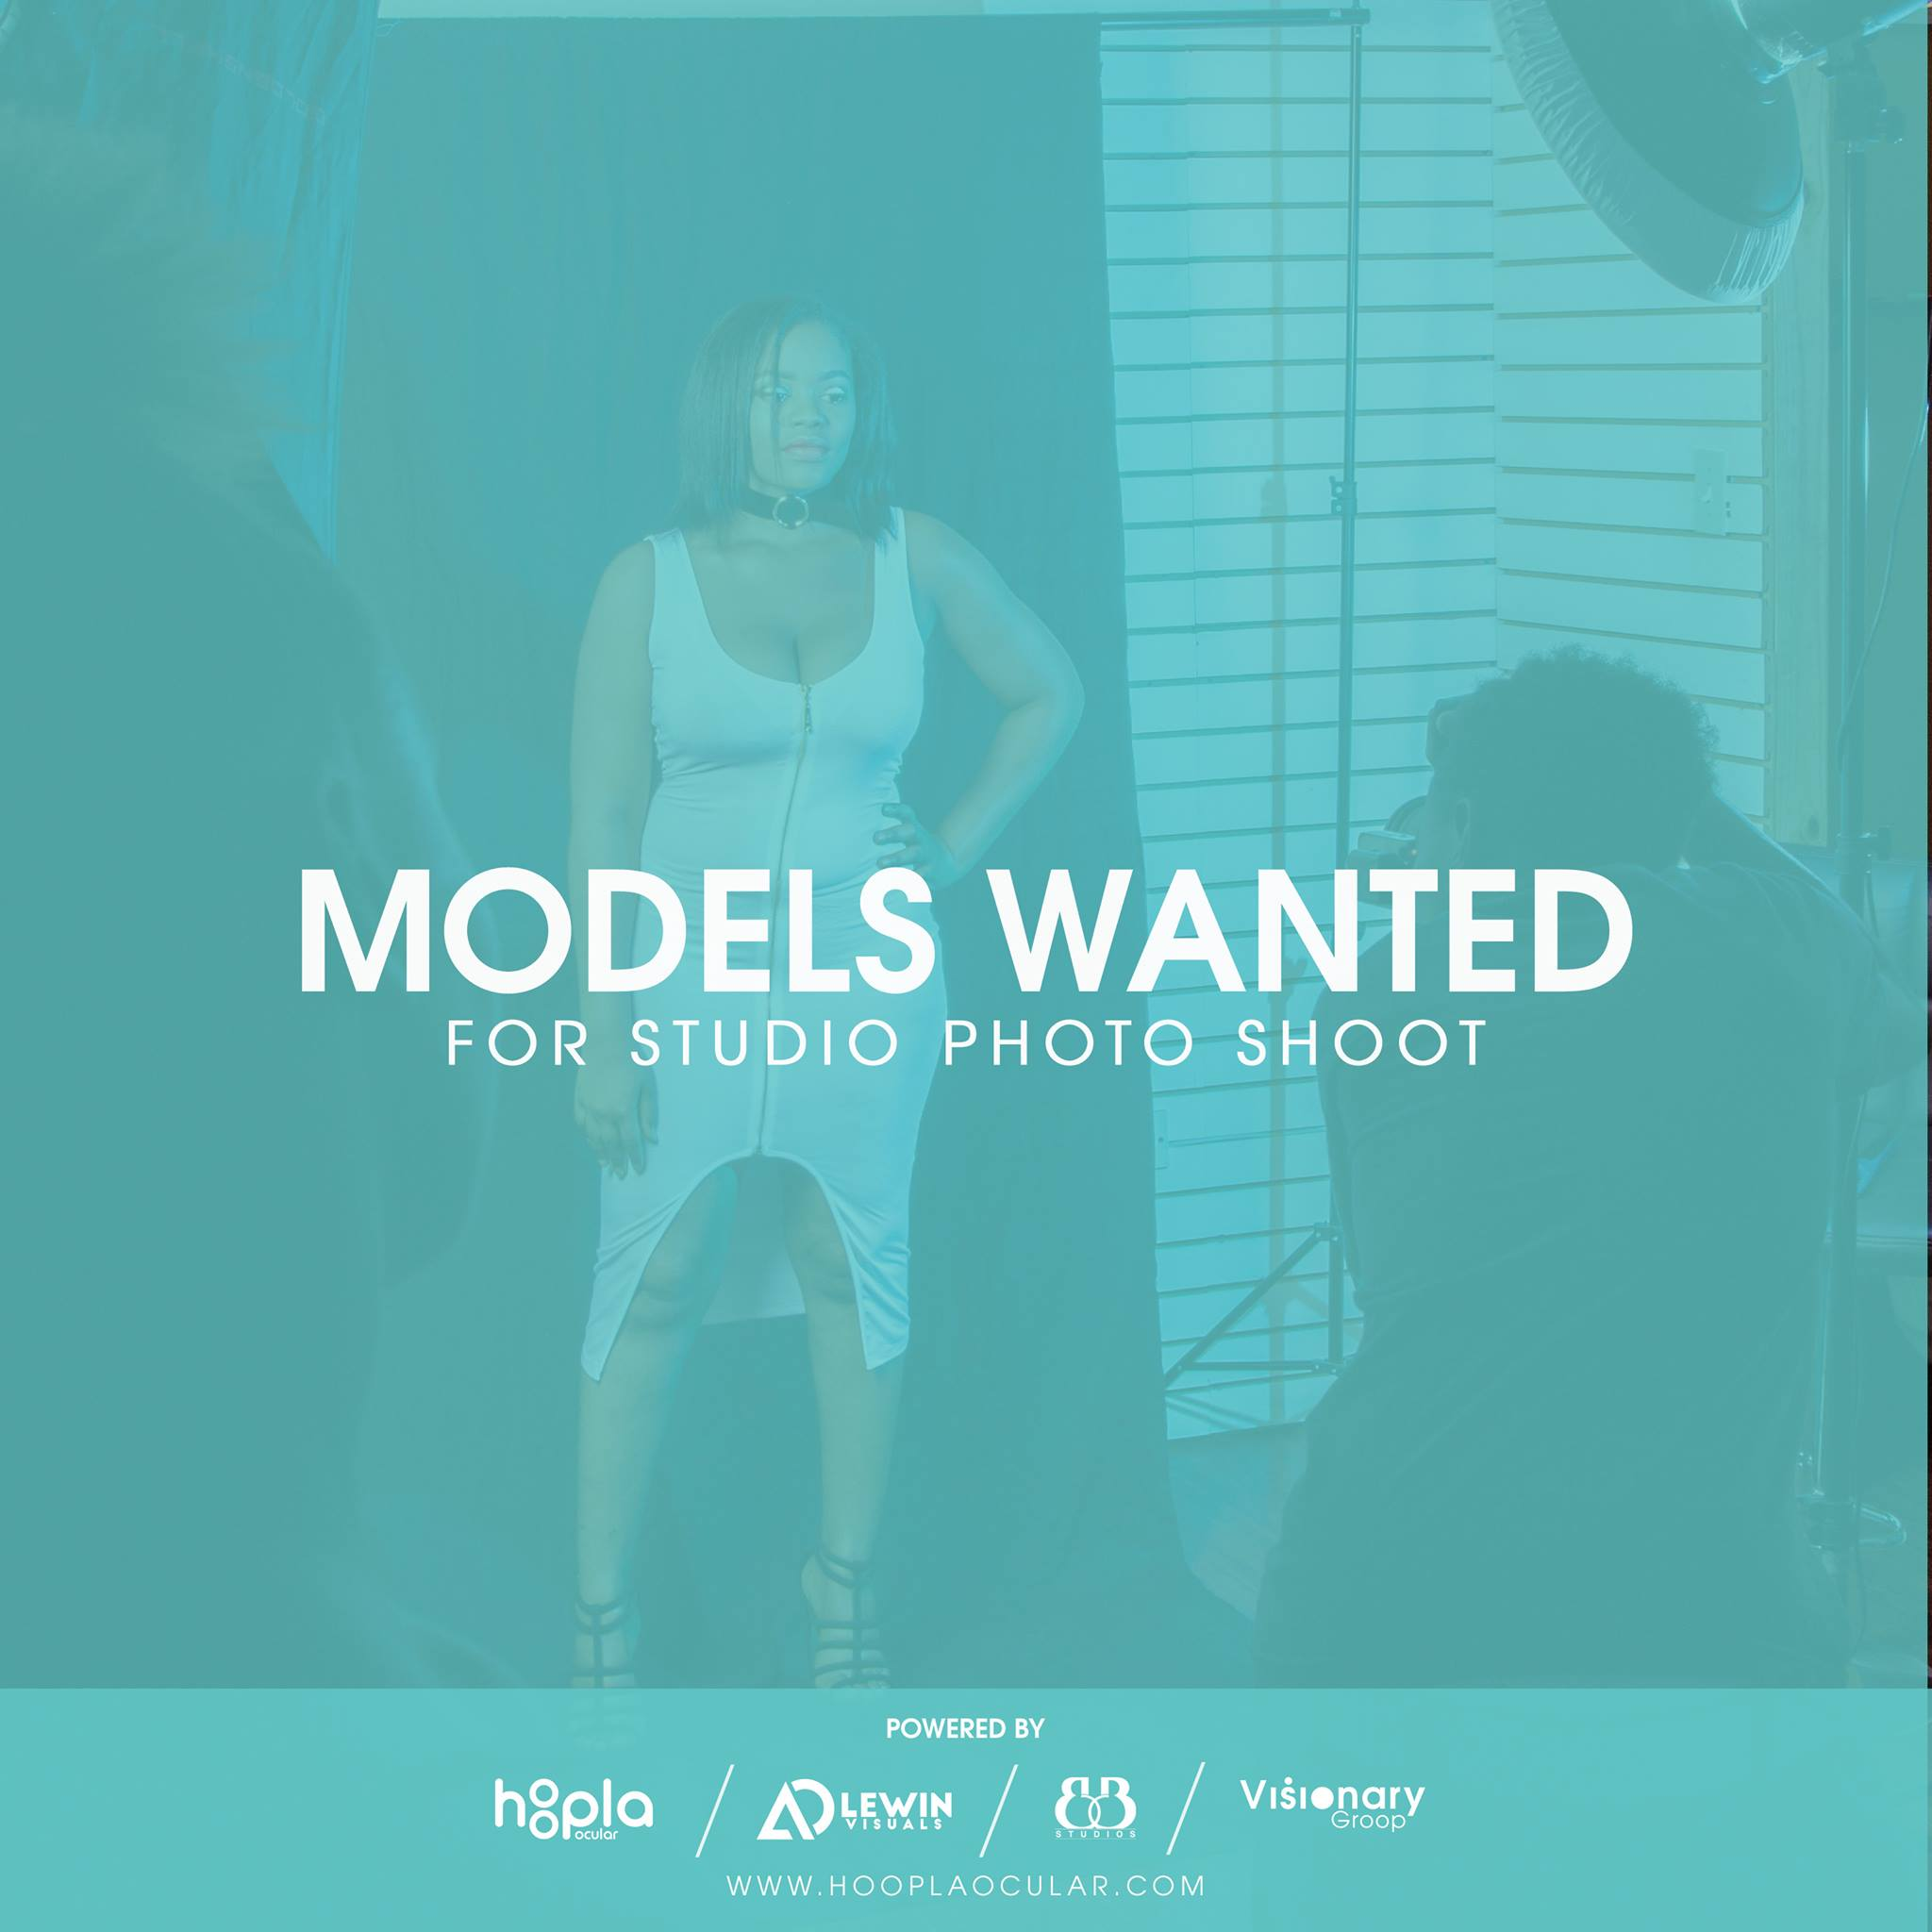 we are seeking models for studio photo shoots; modeling passion preferred!  if y